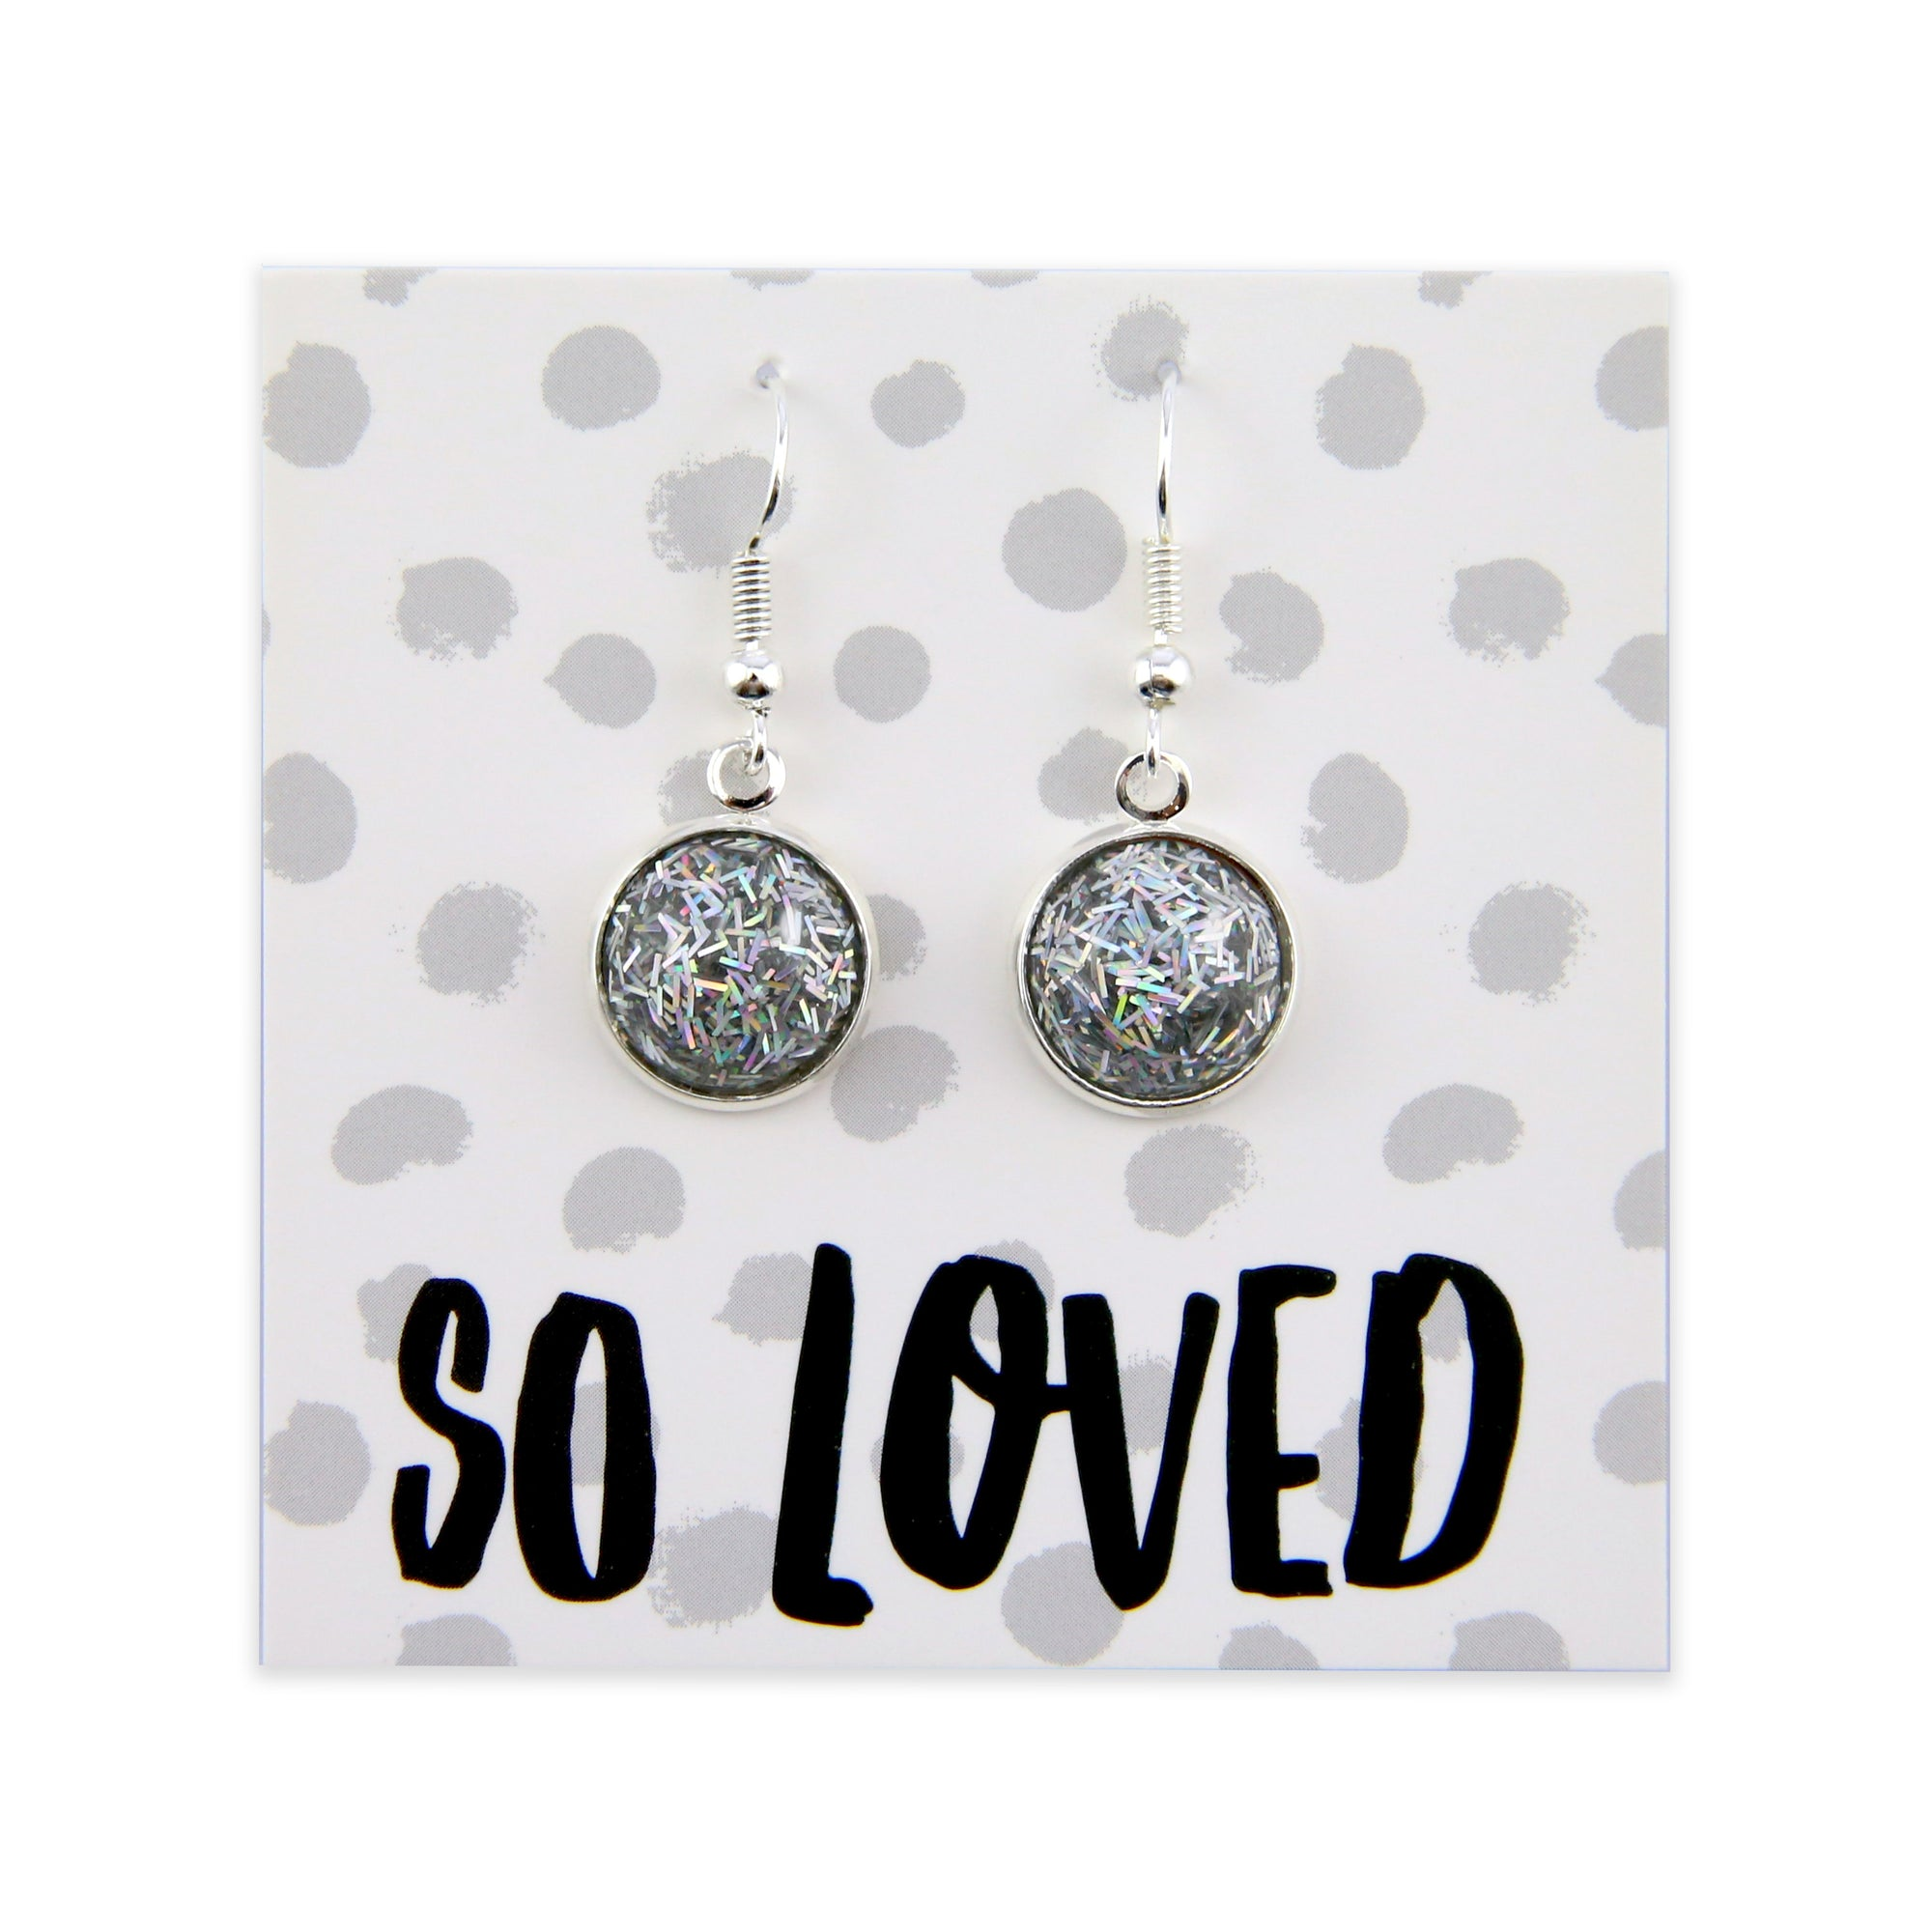 SPARKLEFEST Dangles - So Loved - Stainless Steel Bright Silver Earrings - Poppin Silver Glitter (8507)